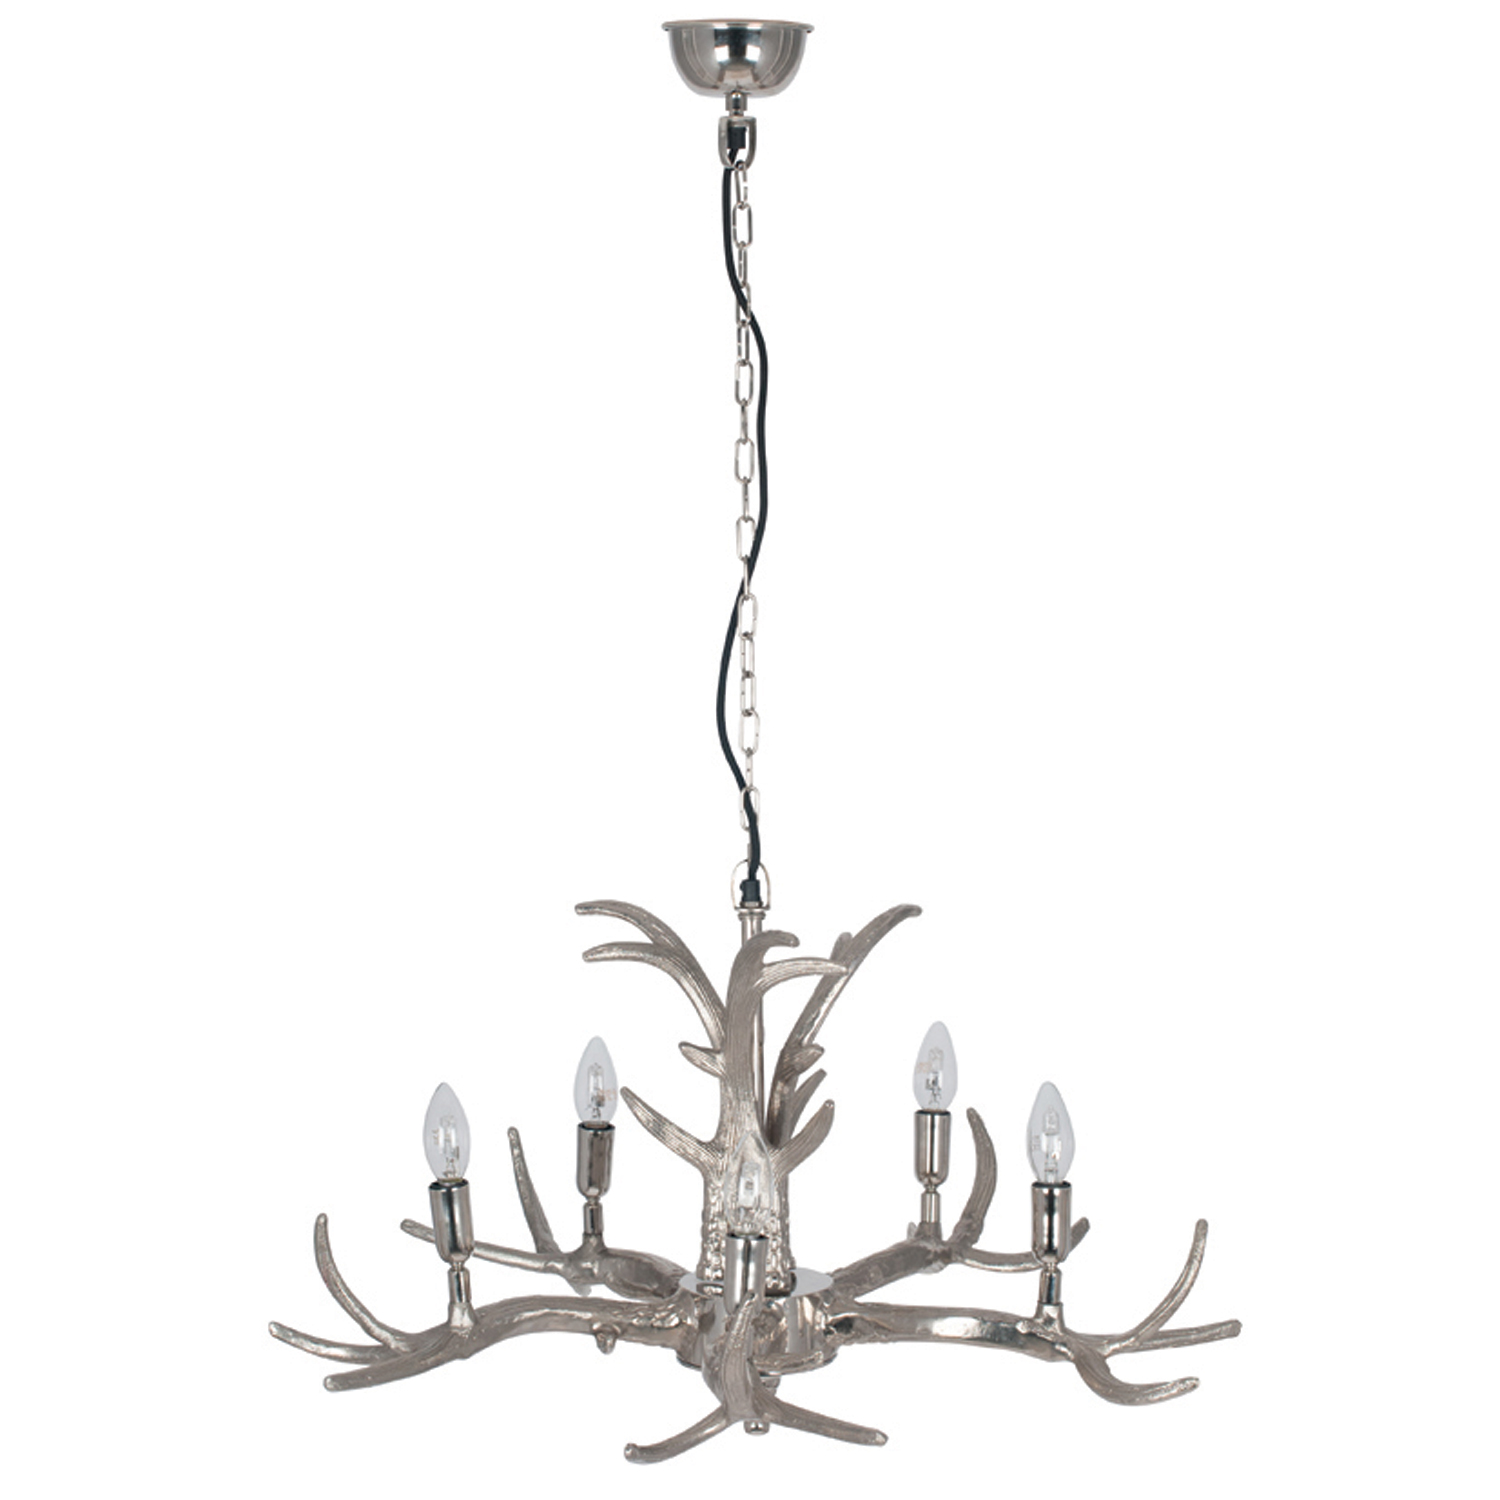 Image of Aimbry 5 Arm Antler Chandelier, Silver